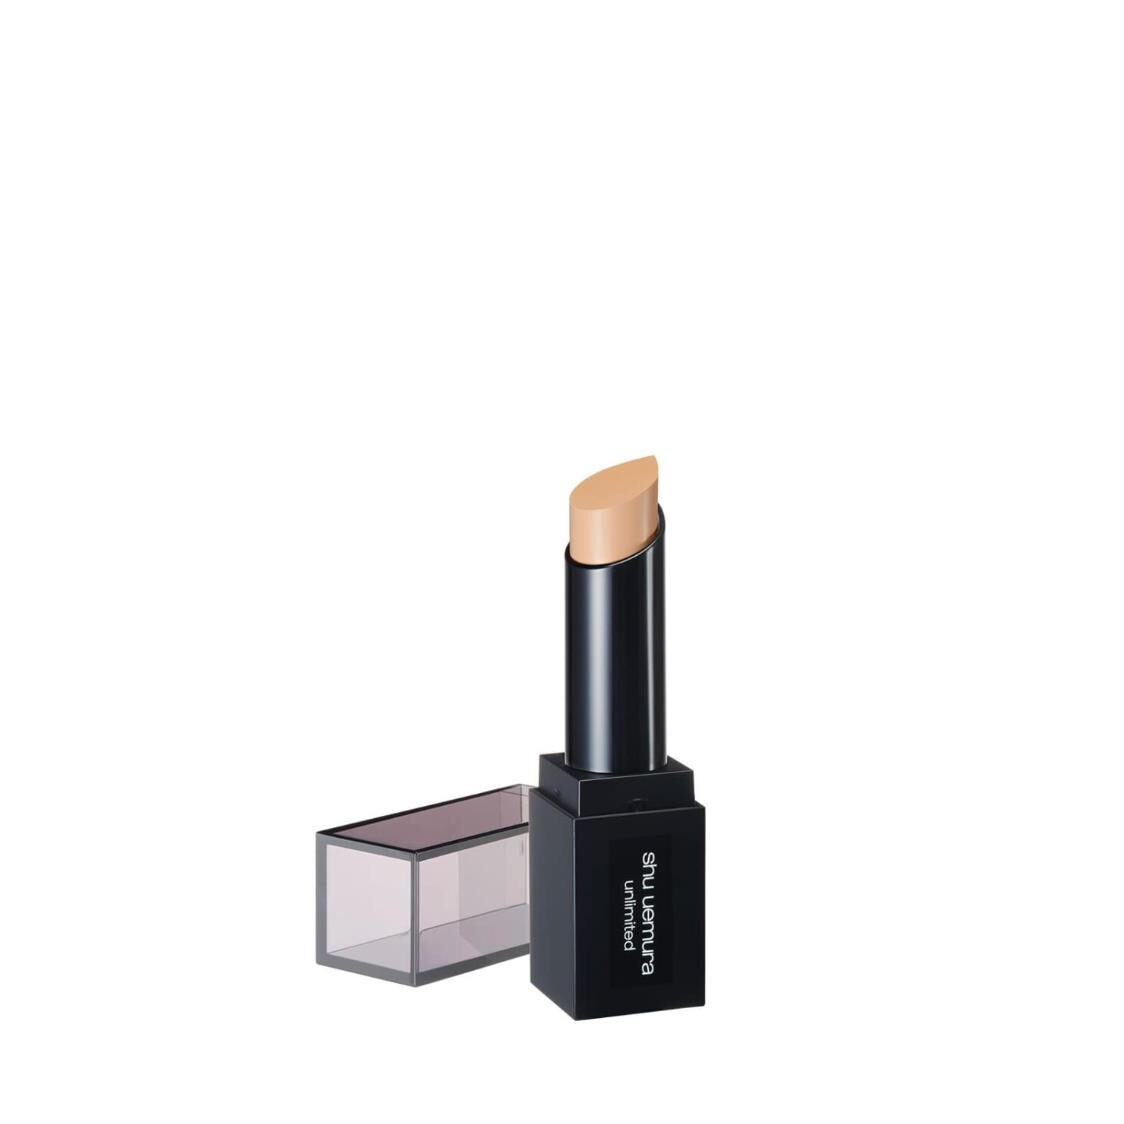 Unlimited Shaping Foundation Stick